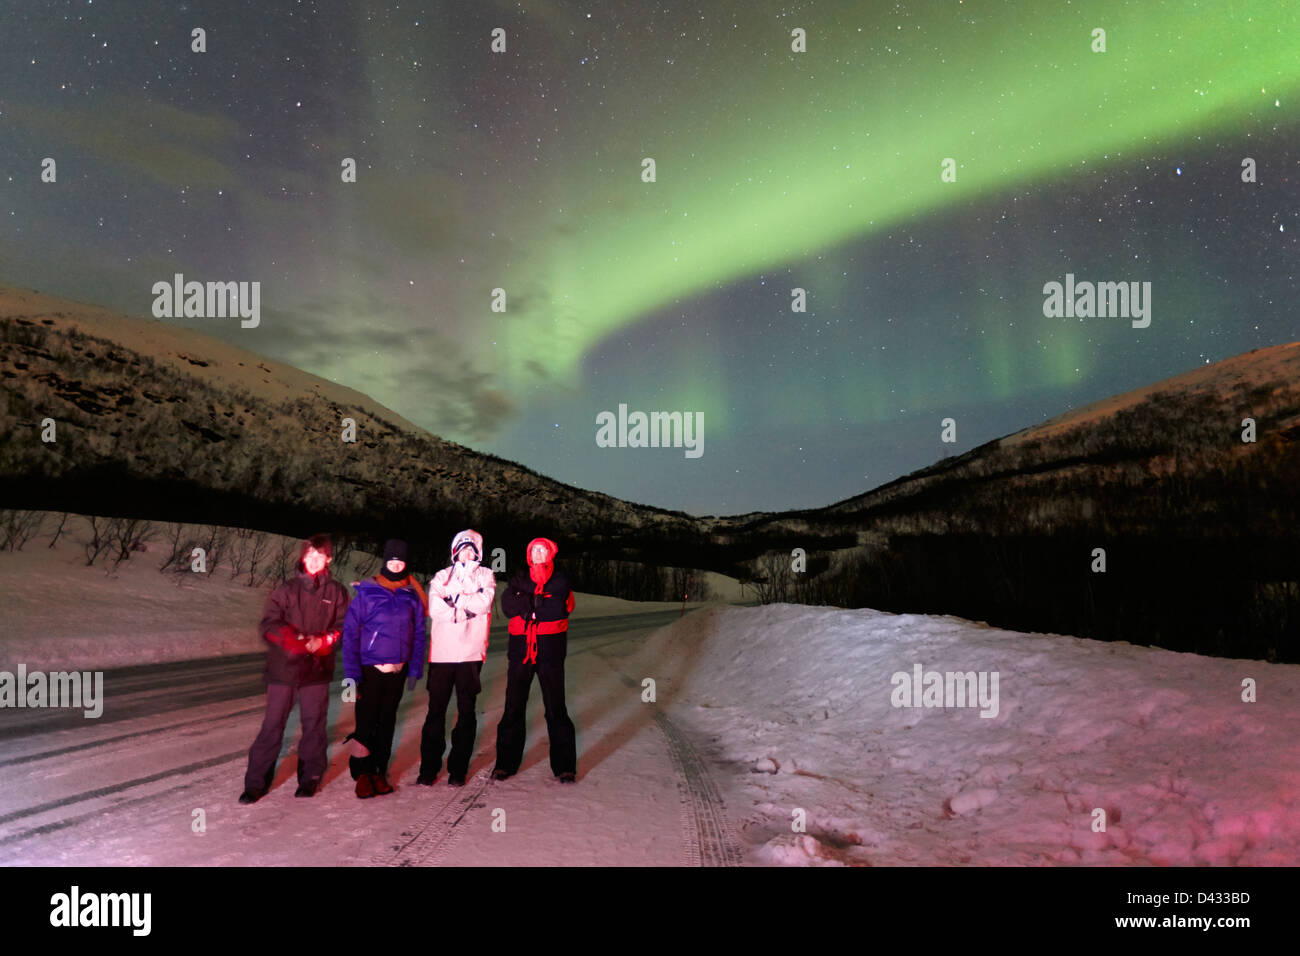 tourists watching northern lights aurora borealis near tromso in northern norway europe - Stock Image